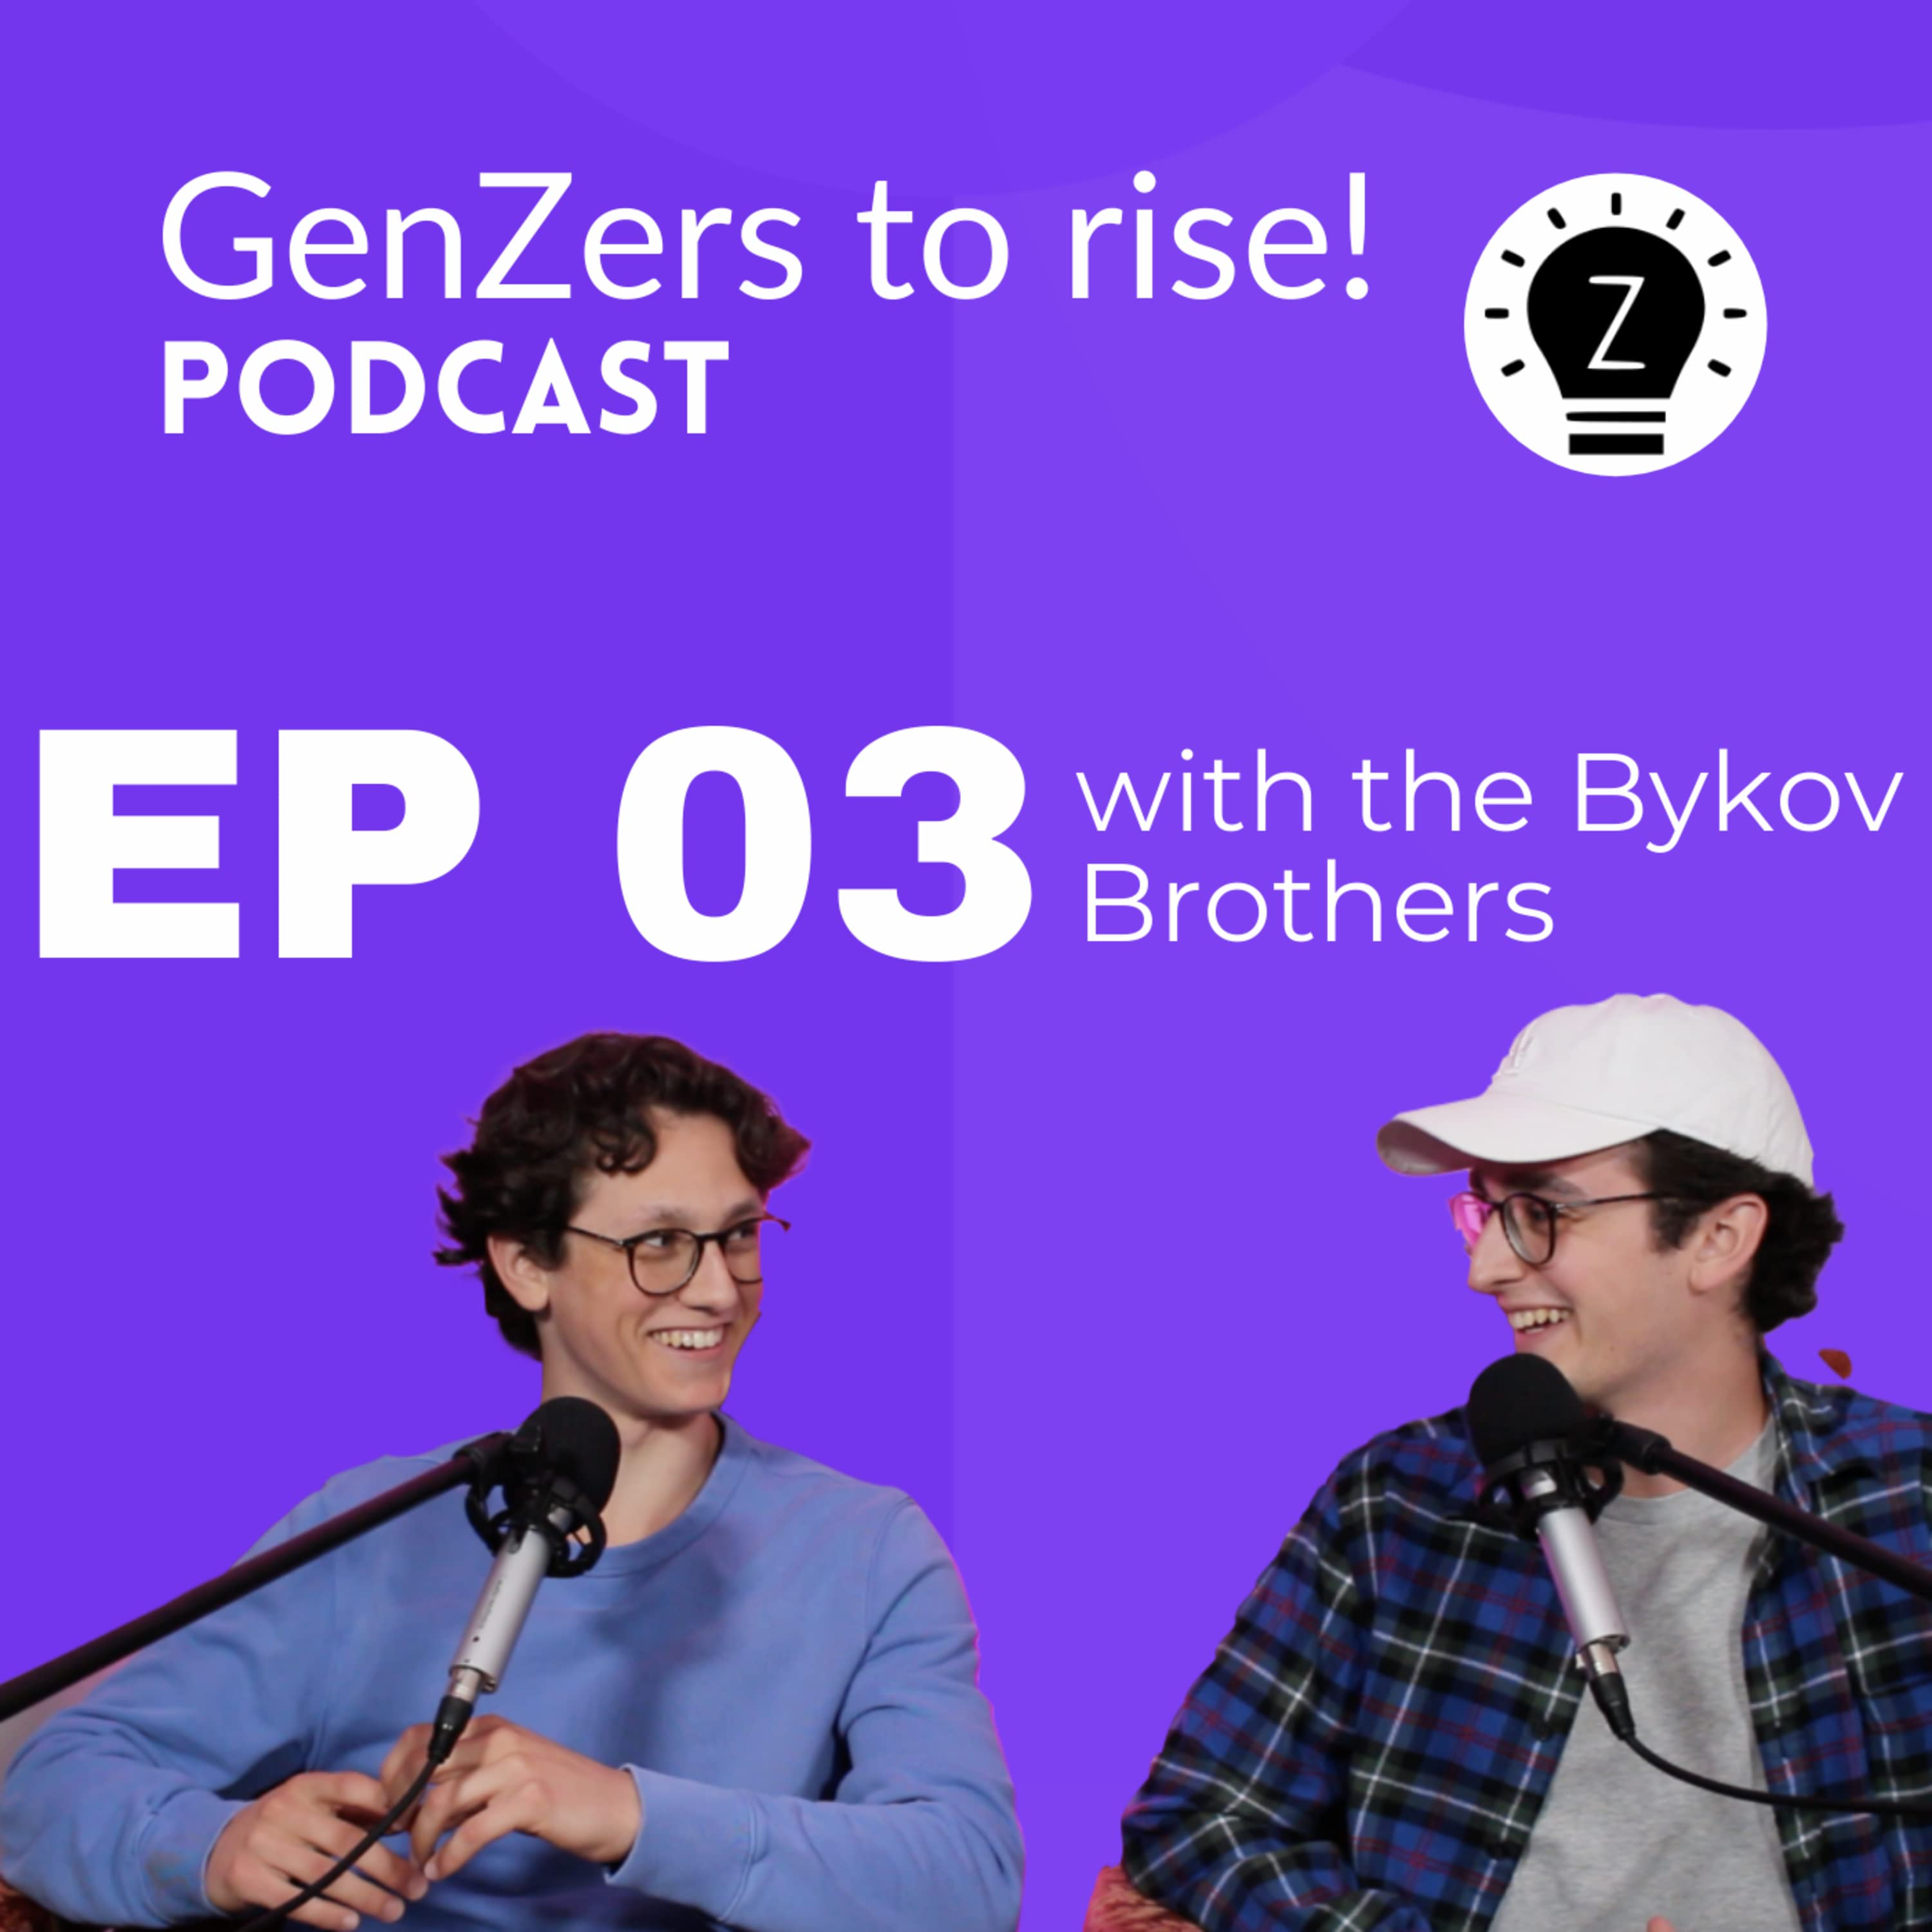 Ever been interested in starting a podcast? with the Bykov brothers